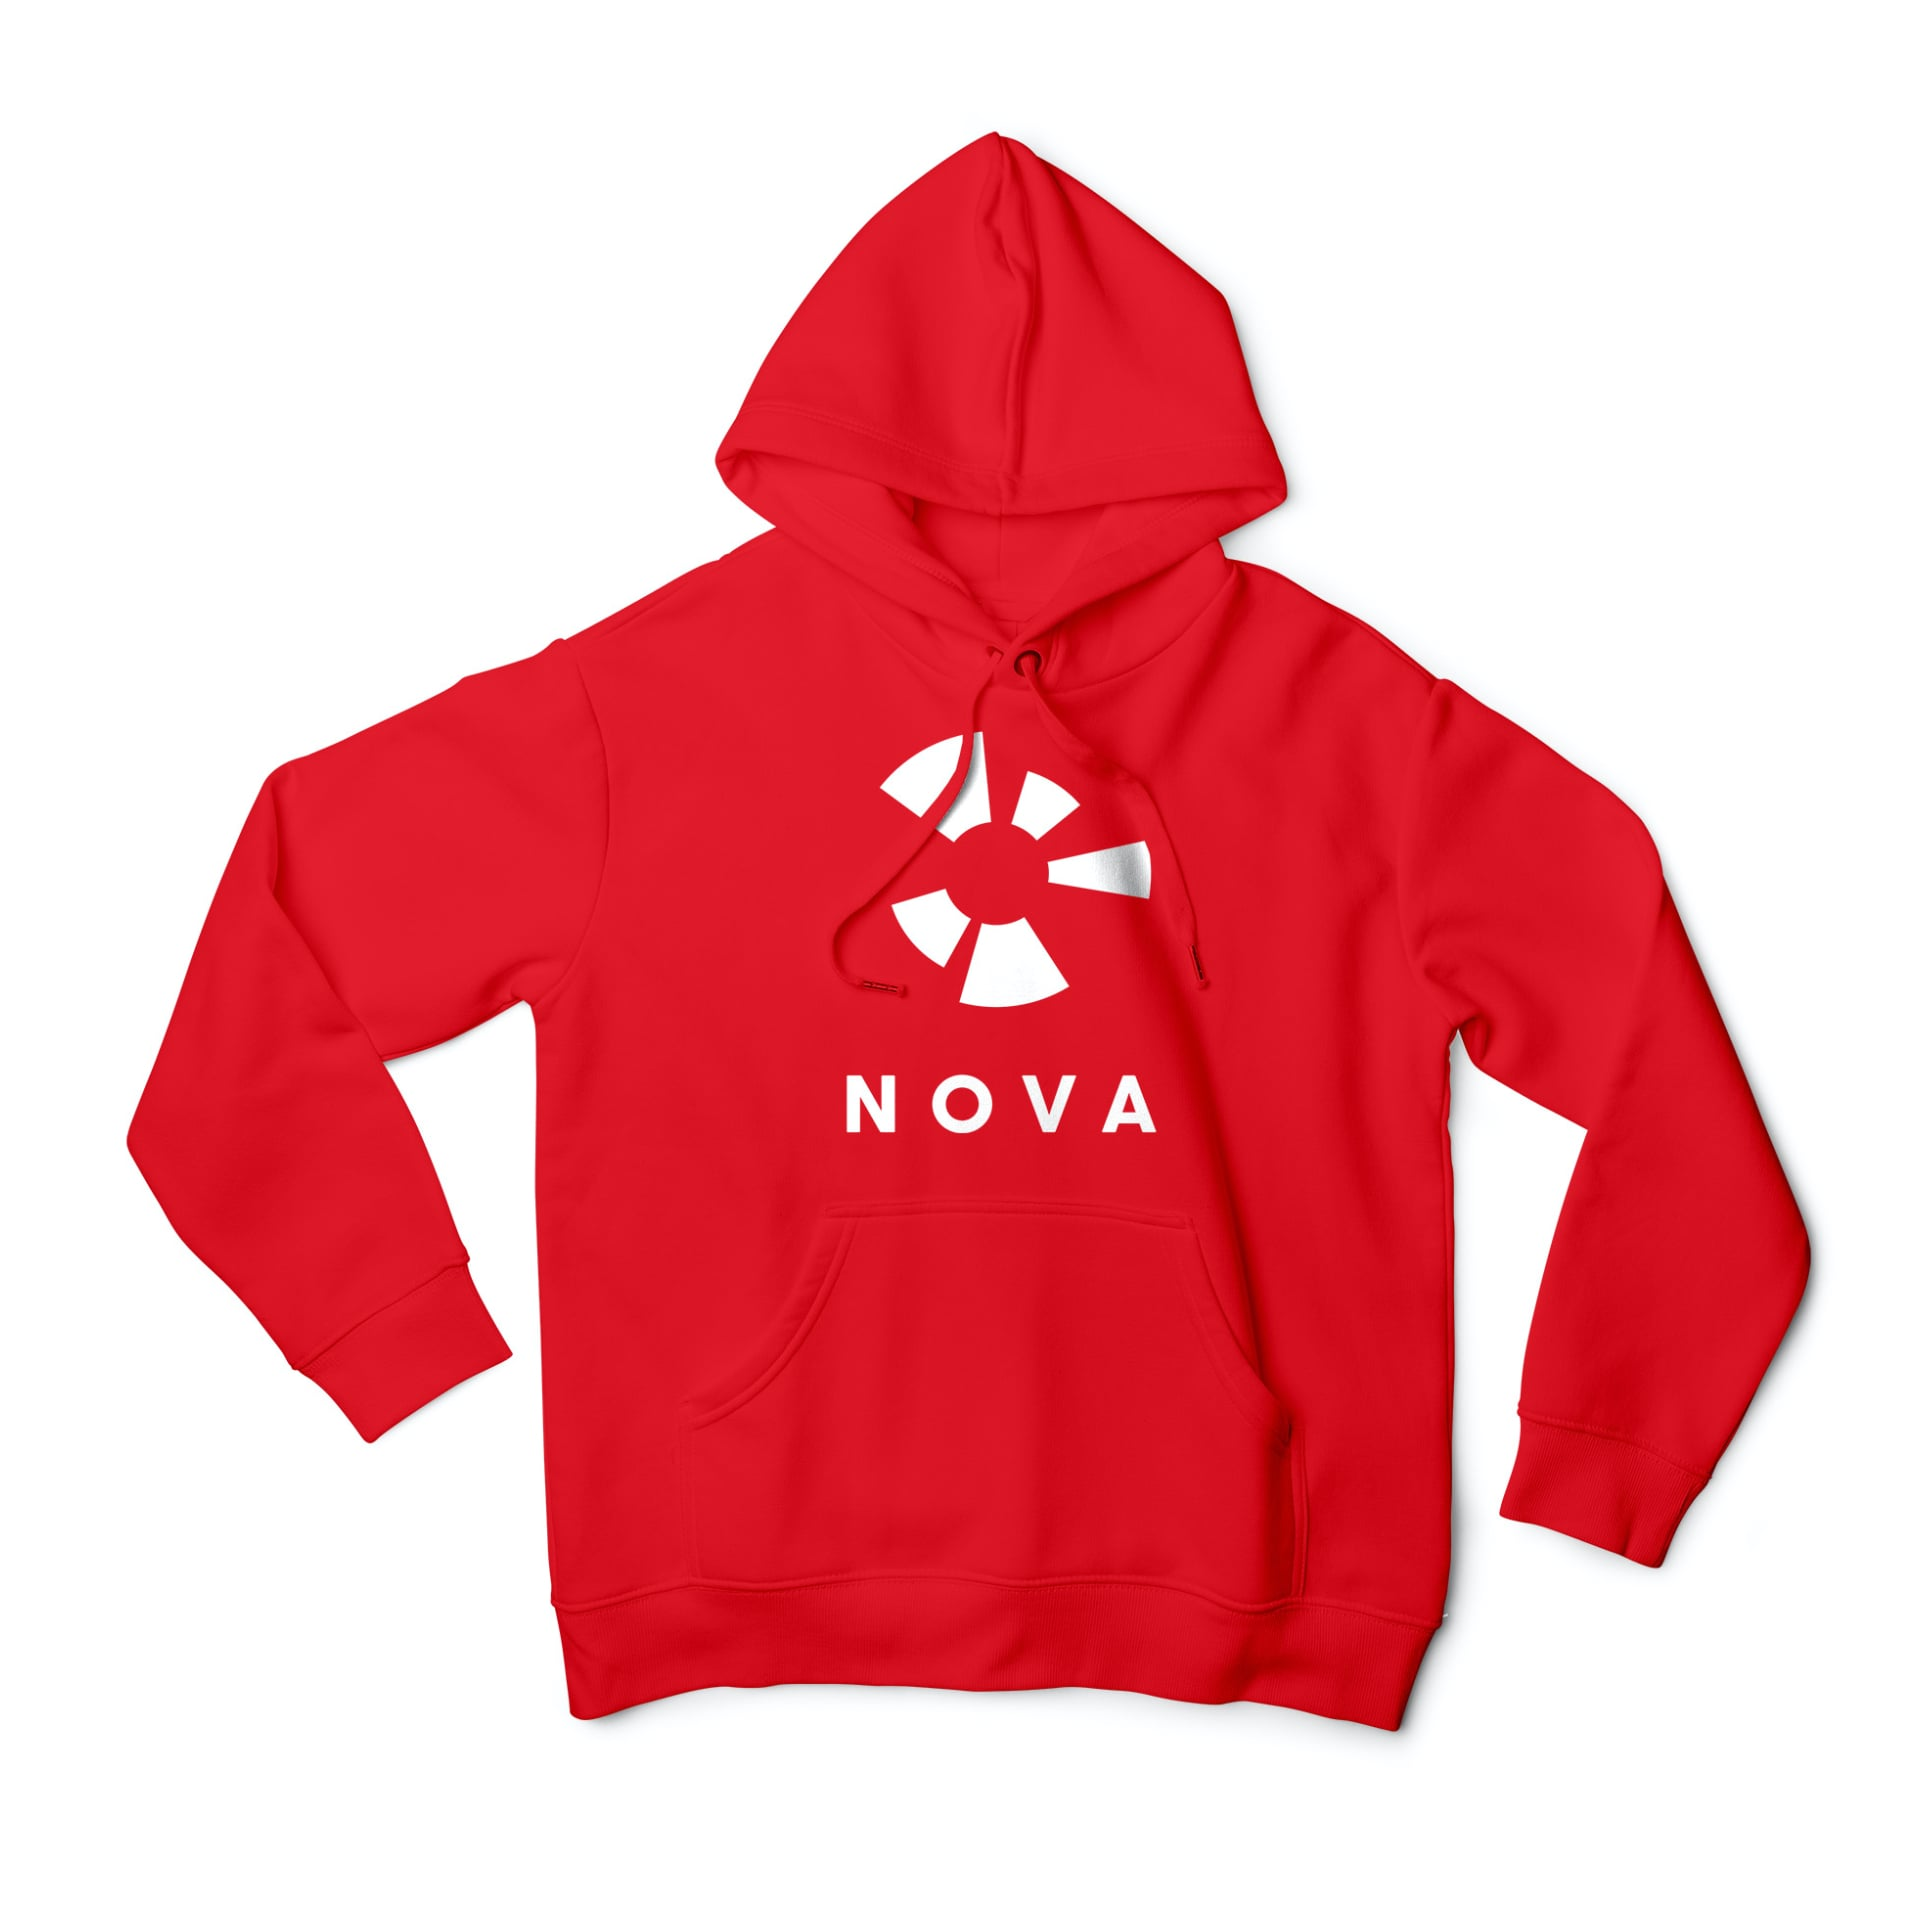 Nova logo in white in the centre of the front of a red hooded top.